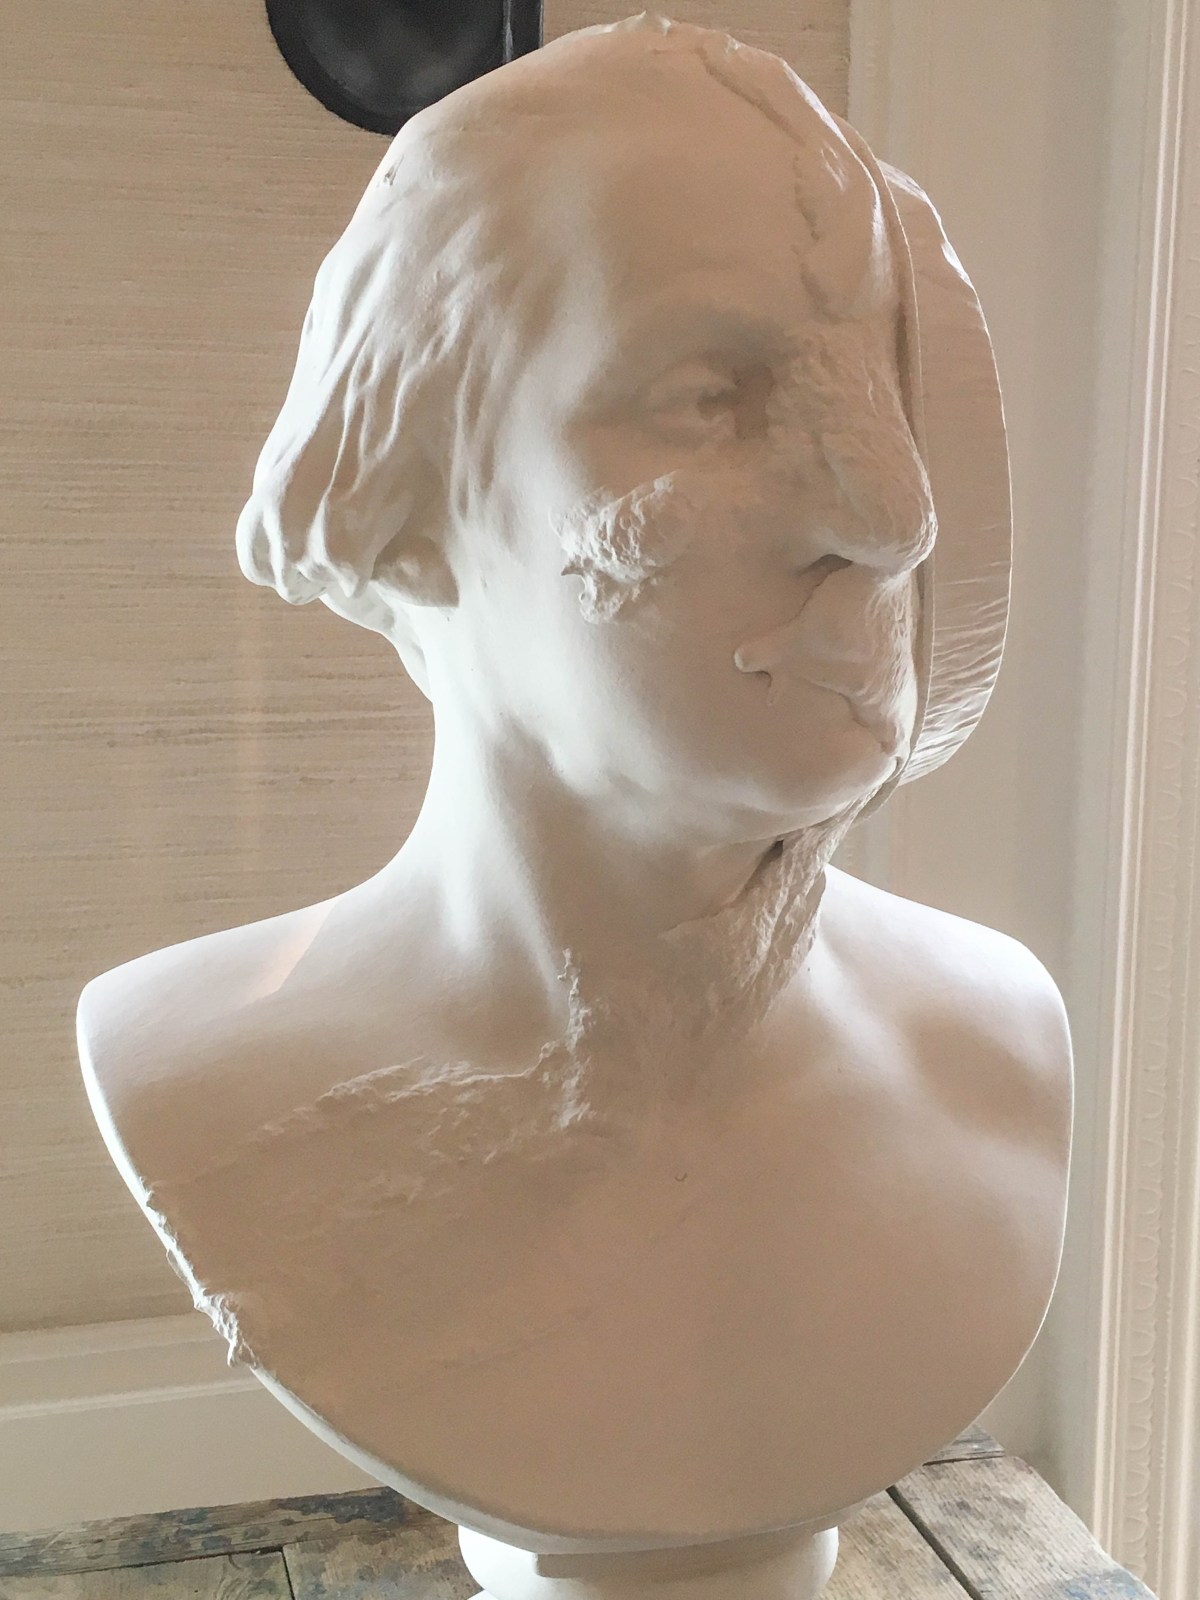 A white plaster bust depicts George Washington with a pie splattered across the side of his face.